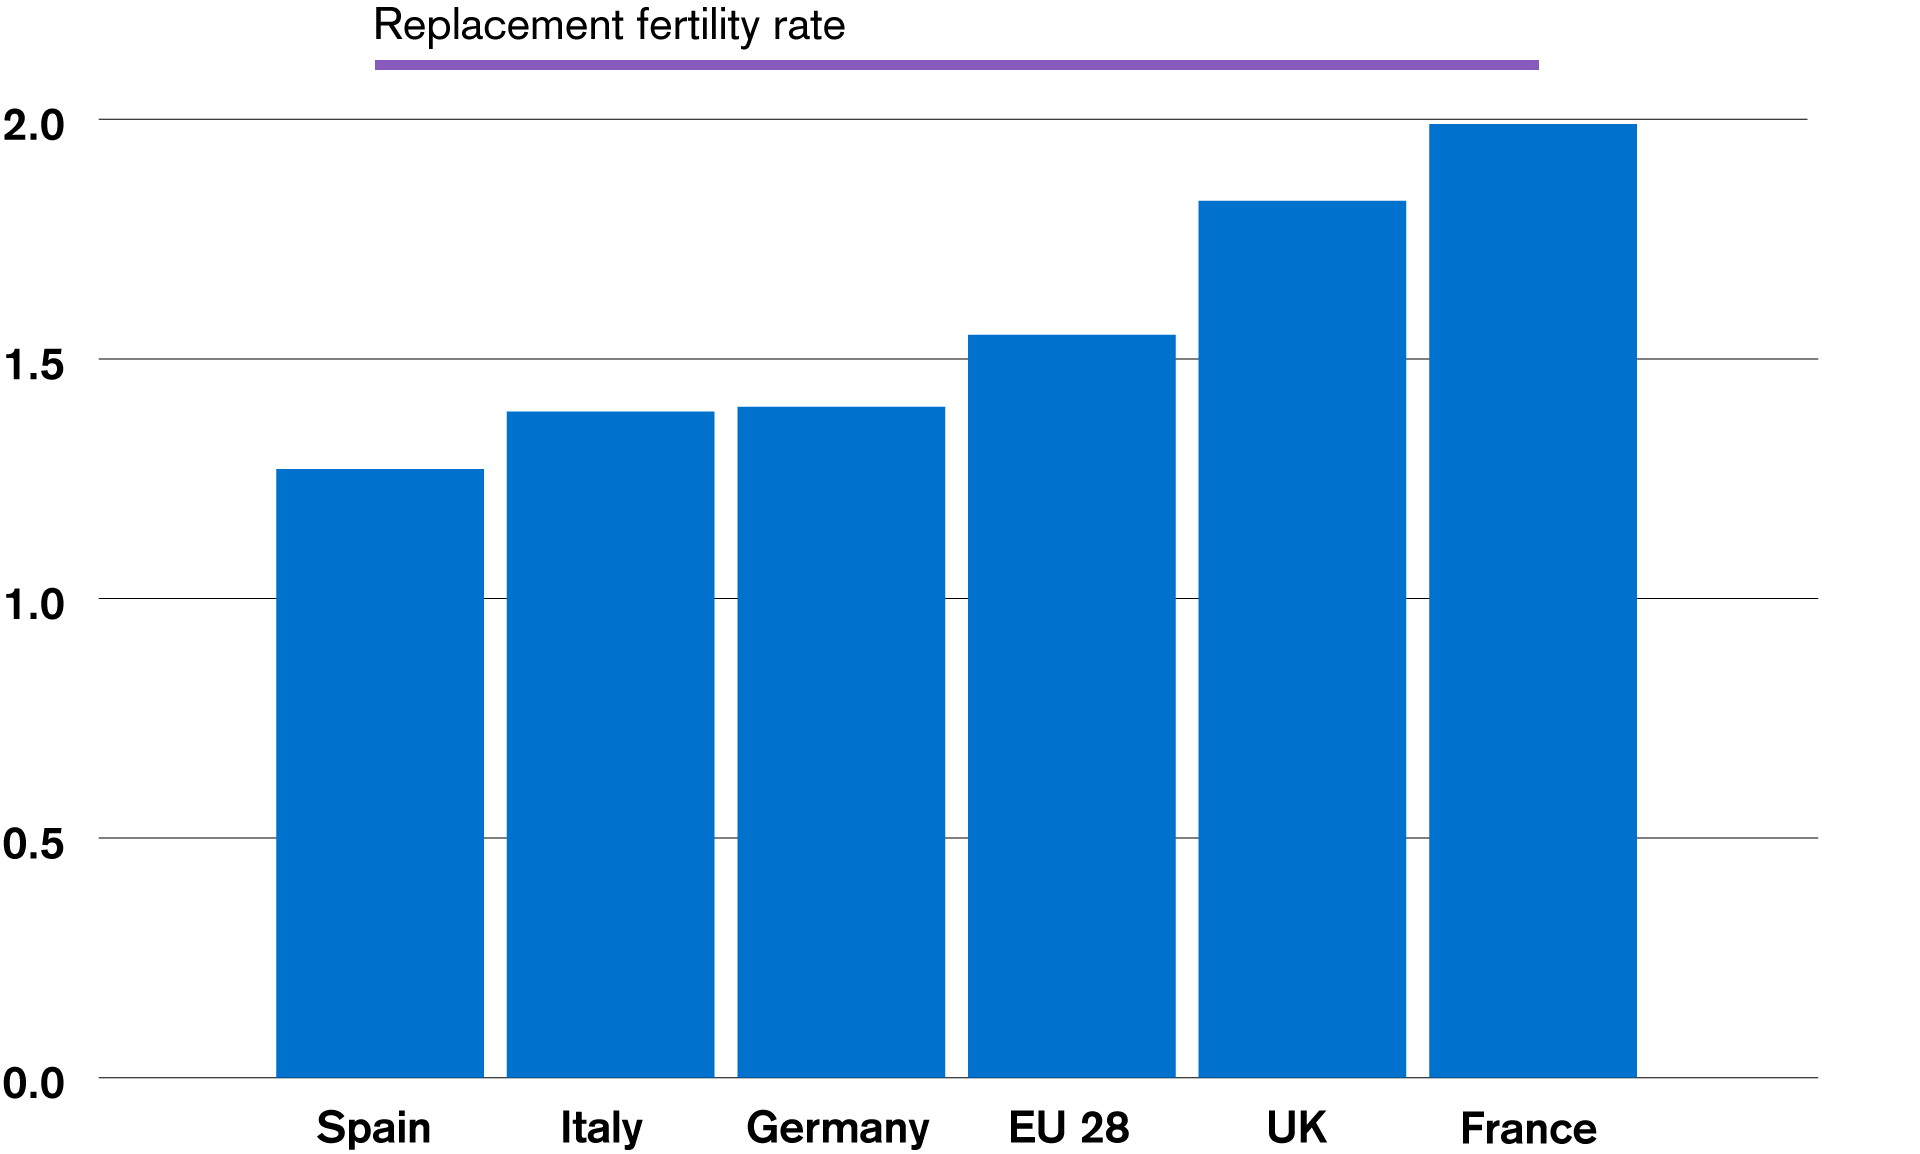 Fertility rates below the replacement rate